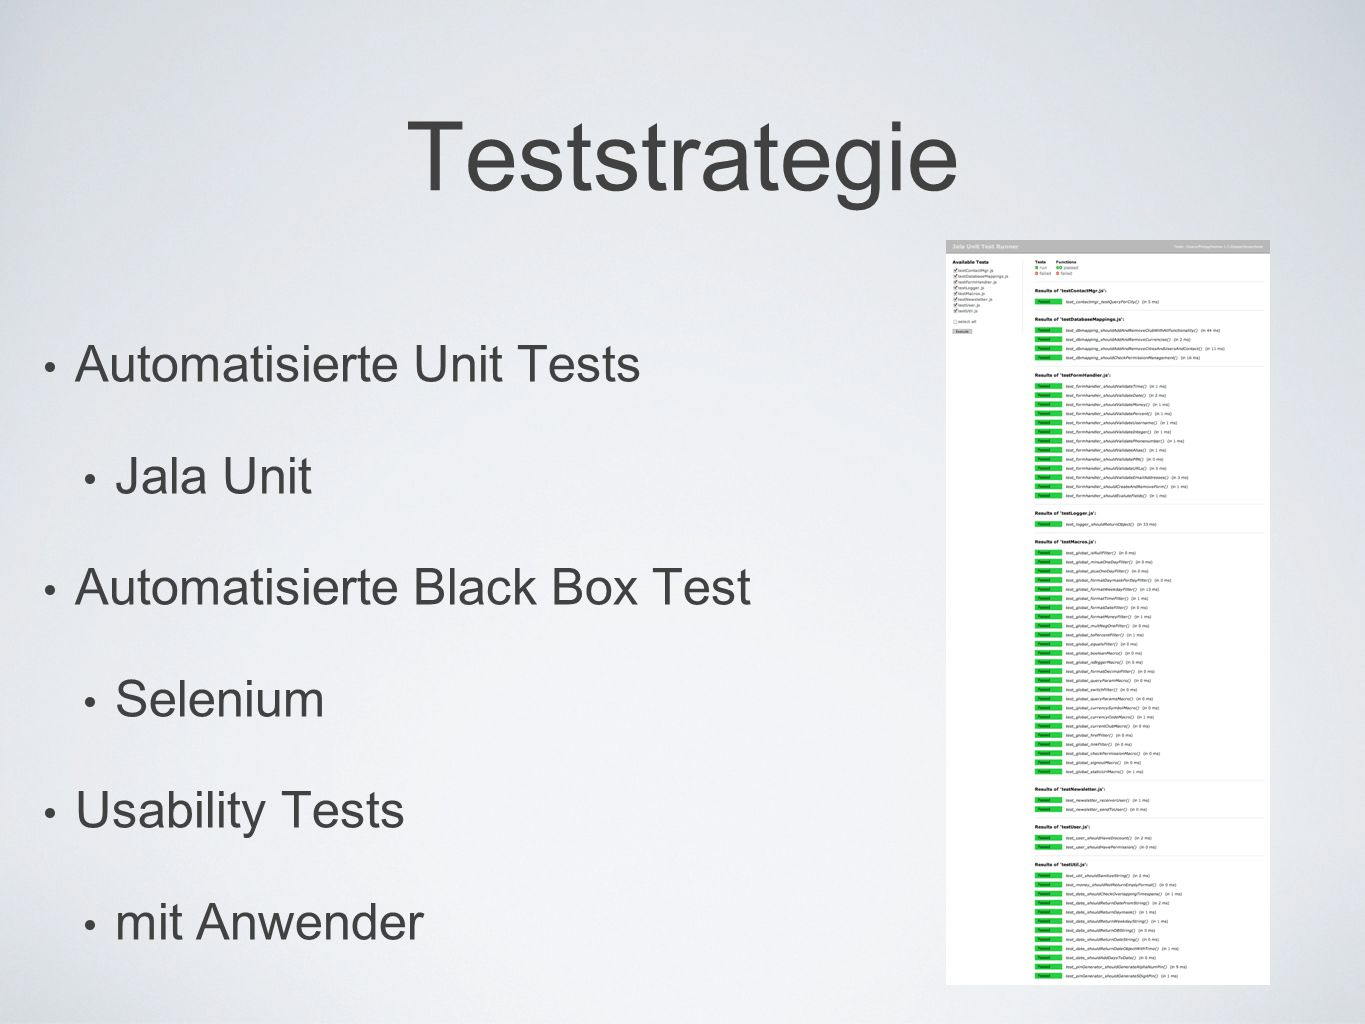 Teststrategie Automatisierte Unit Tests Jala Unit Automatisierte Black Box Test Selenium Usability Tests mit Anwender